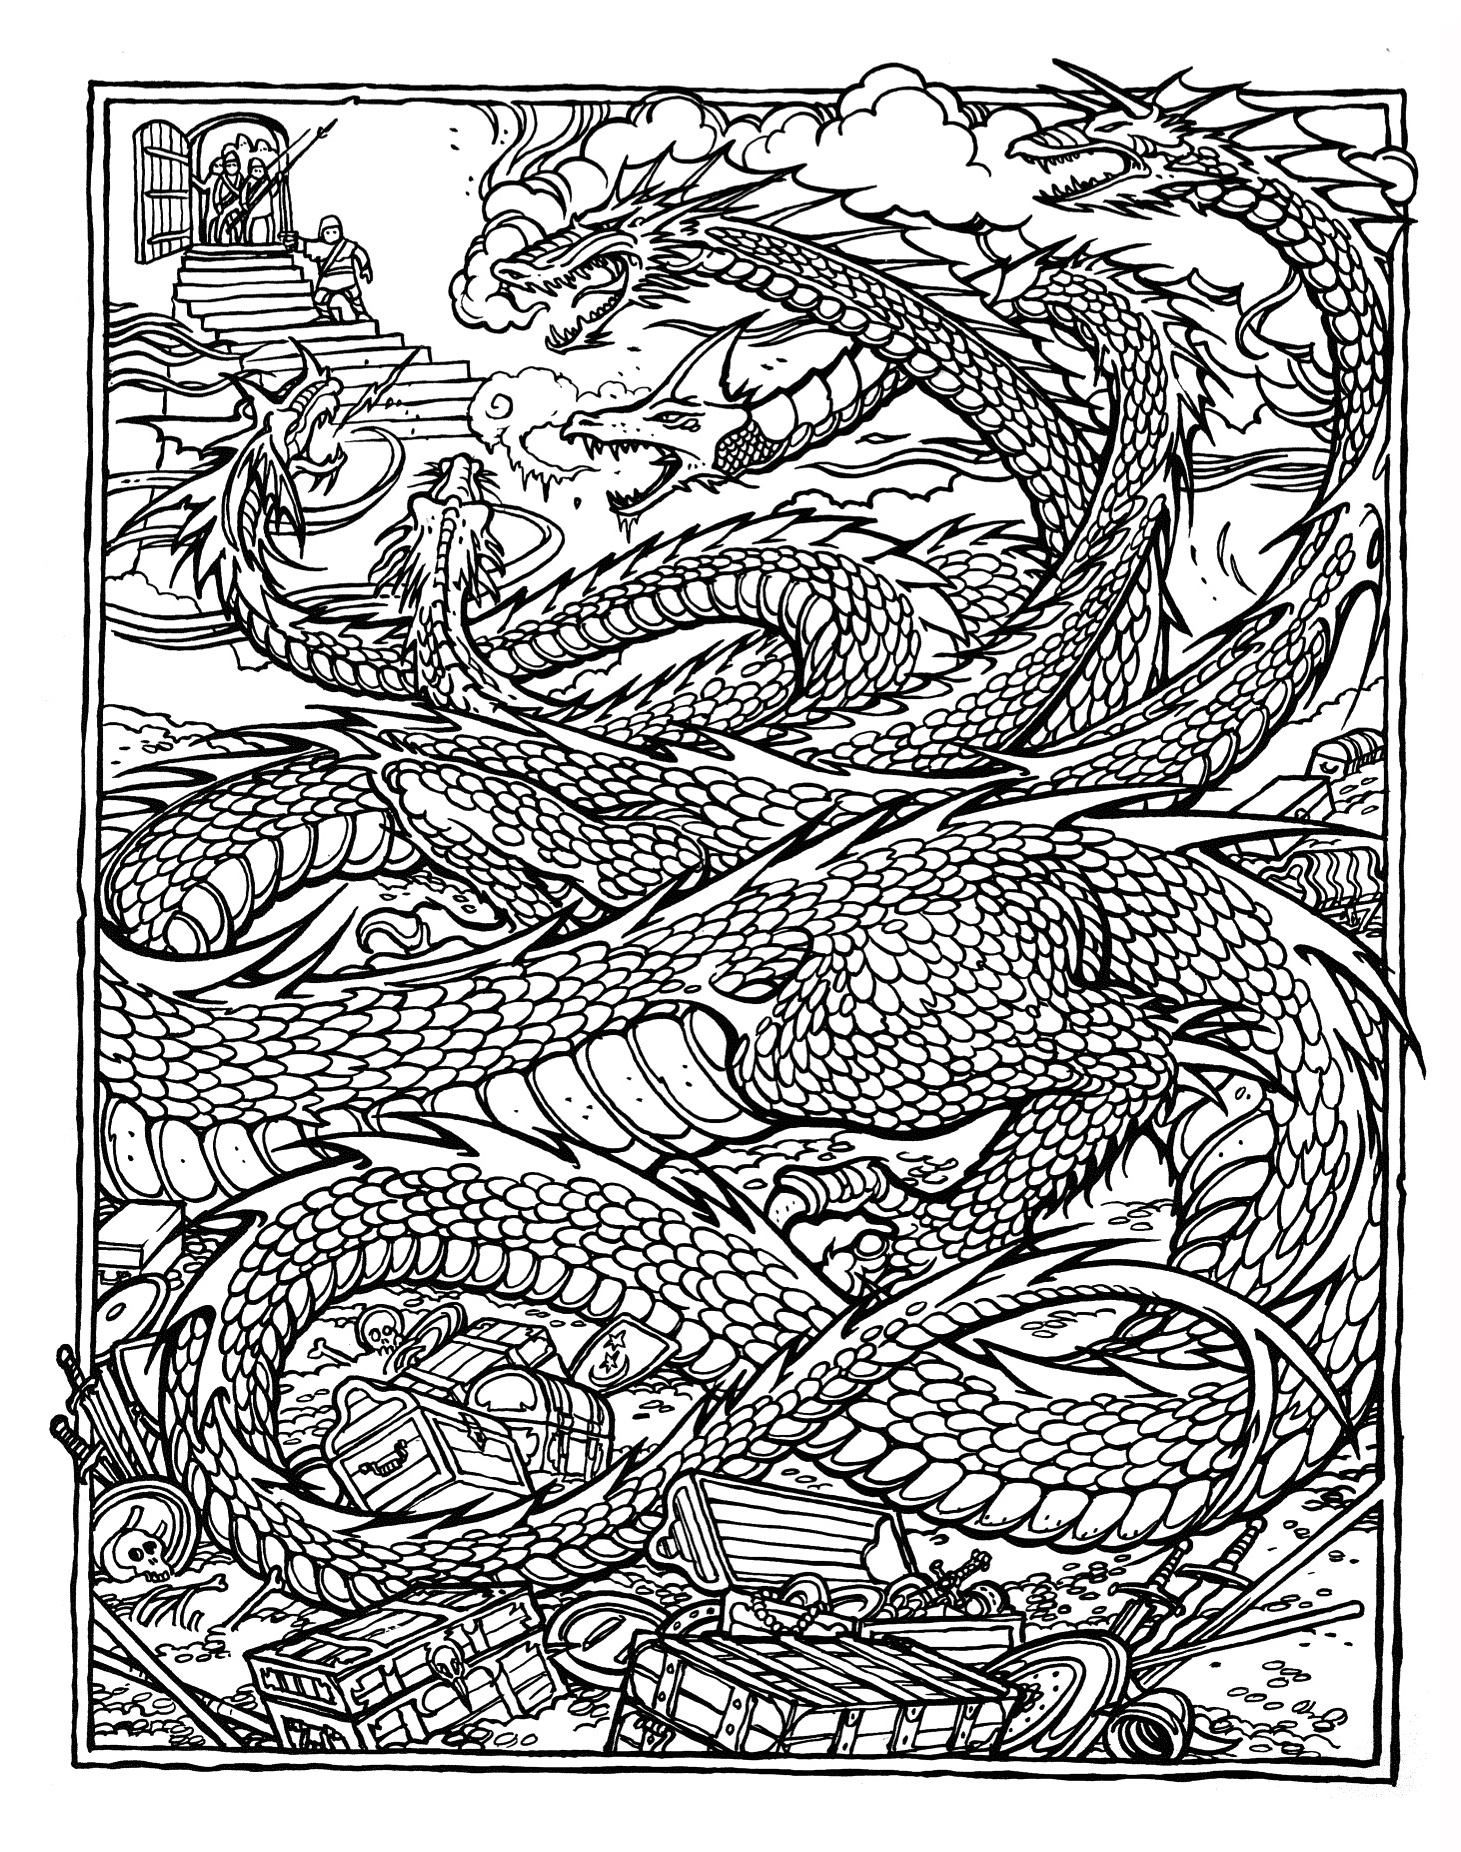 coloring pages with dragons - photo#34